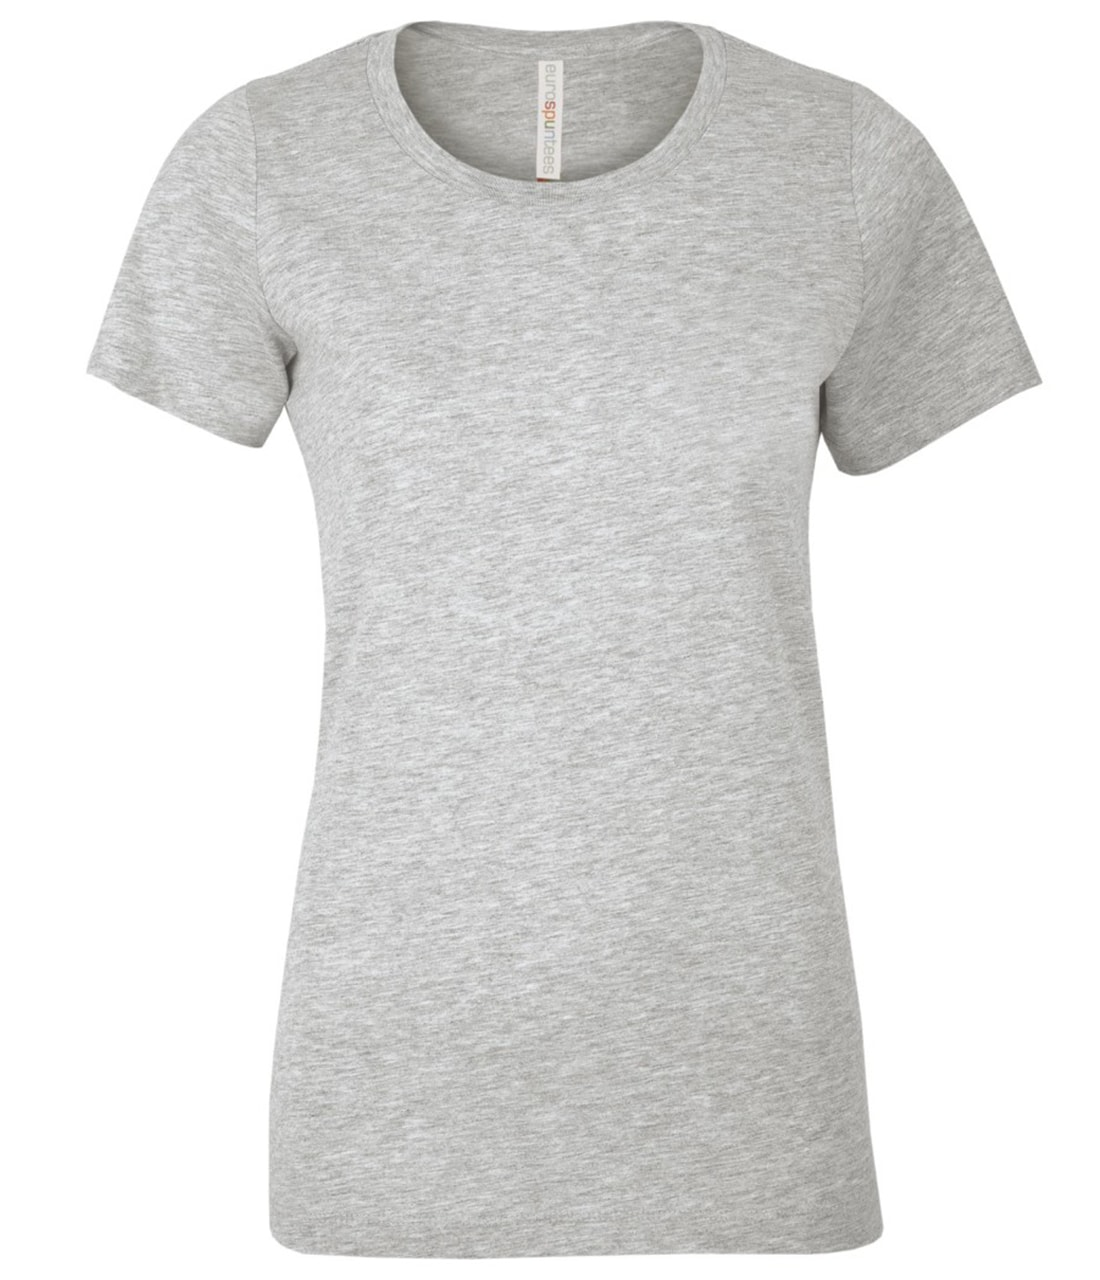 Picture of ATC Eurospun Ring Spun Ladies' Tee